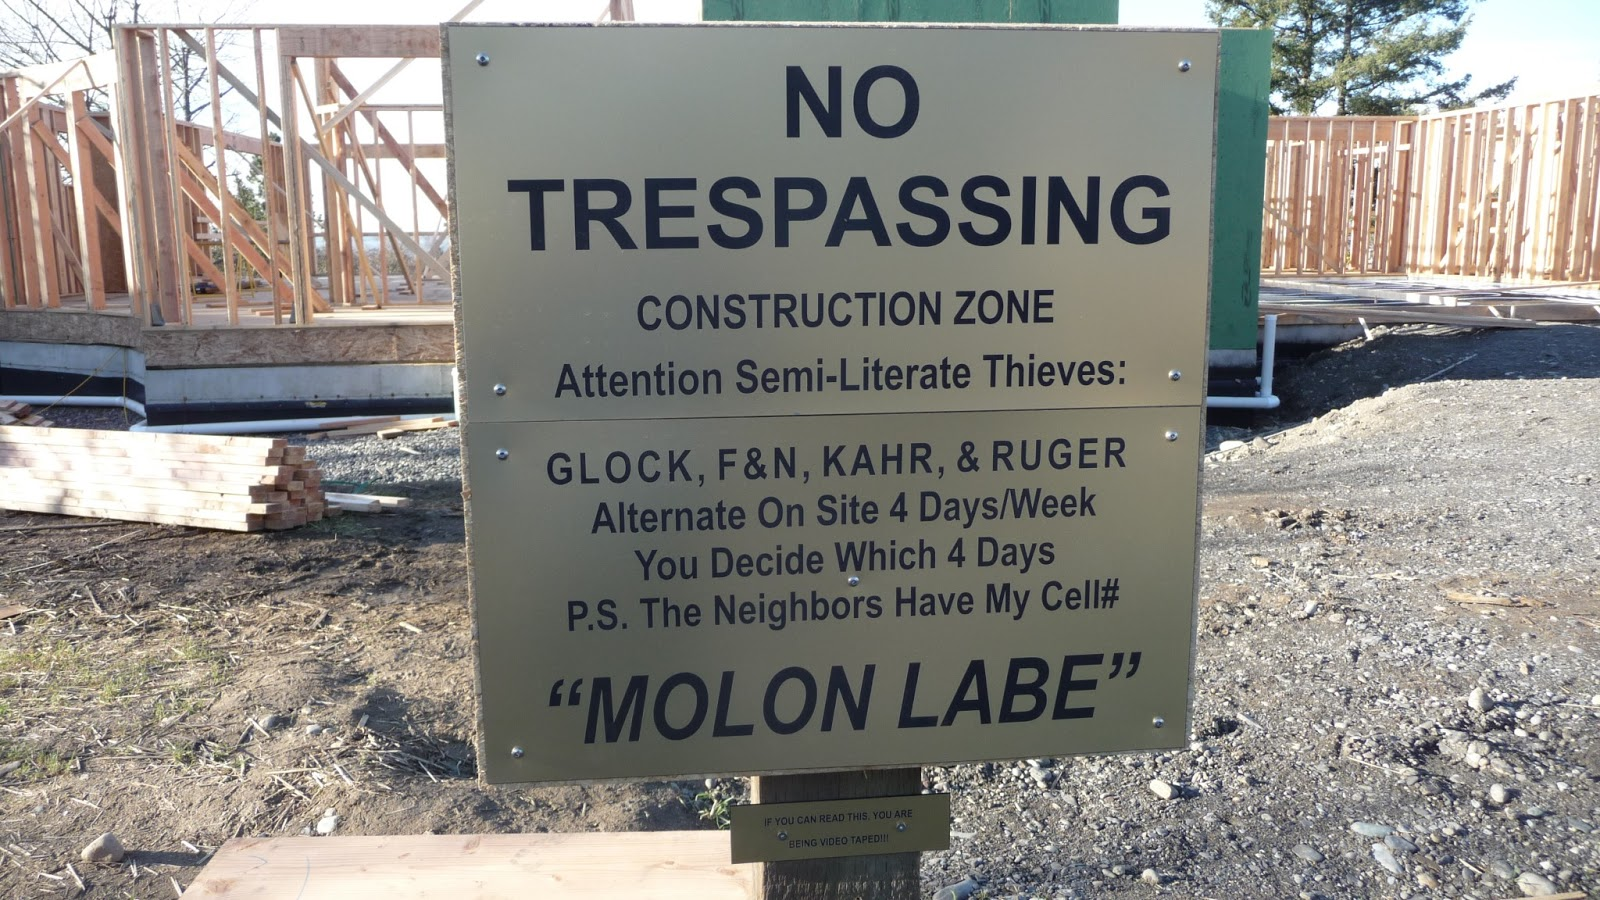 What is the worst that can happen if you ignore a No Trespassing sign?